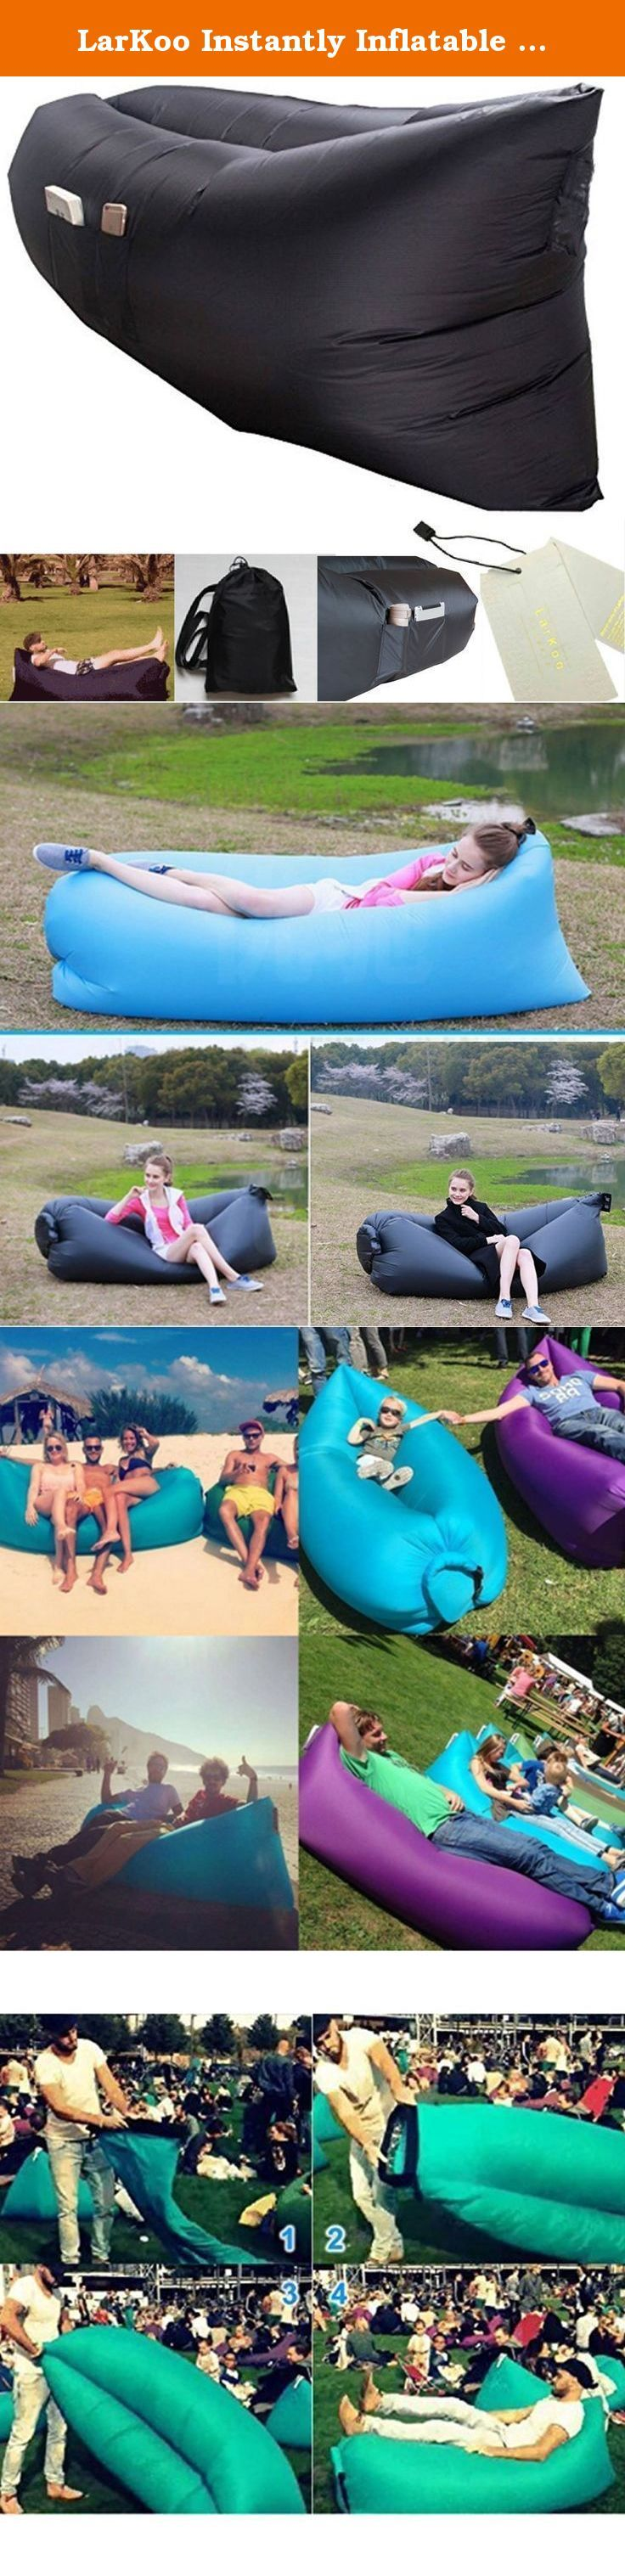 LarKoo Instantly Inflatable Hangout Lounger Lasy Bed with Storage Pouch Carry Bag, Air Sleep Sofa Chair Couch Portable Furniture, Sleeping Compression Air Bag For Camping, Beach Couch Sofa (Black). Outdoor Inflatable Lounger, ,LarKoo Inflatable Outdoor Air Sleep Sofa Couch Portable Furniture , Sleeping Compression Air Bag, Beach Lounger, Portable Dream Chair for Summer Camping Beach A recessed center area is designed to cradle anyone who lies down on the lounger, making the darn thing…